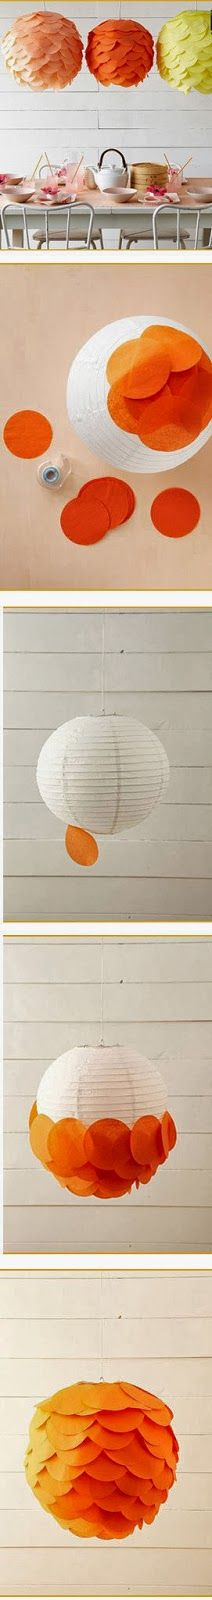 Upgrade a paper lantern with circles of coloured paper or cloth | My DIY Projects